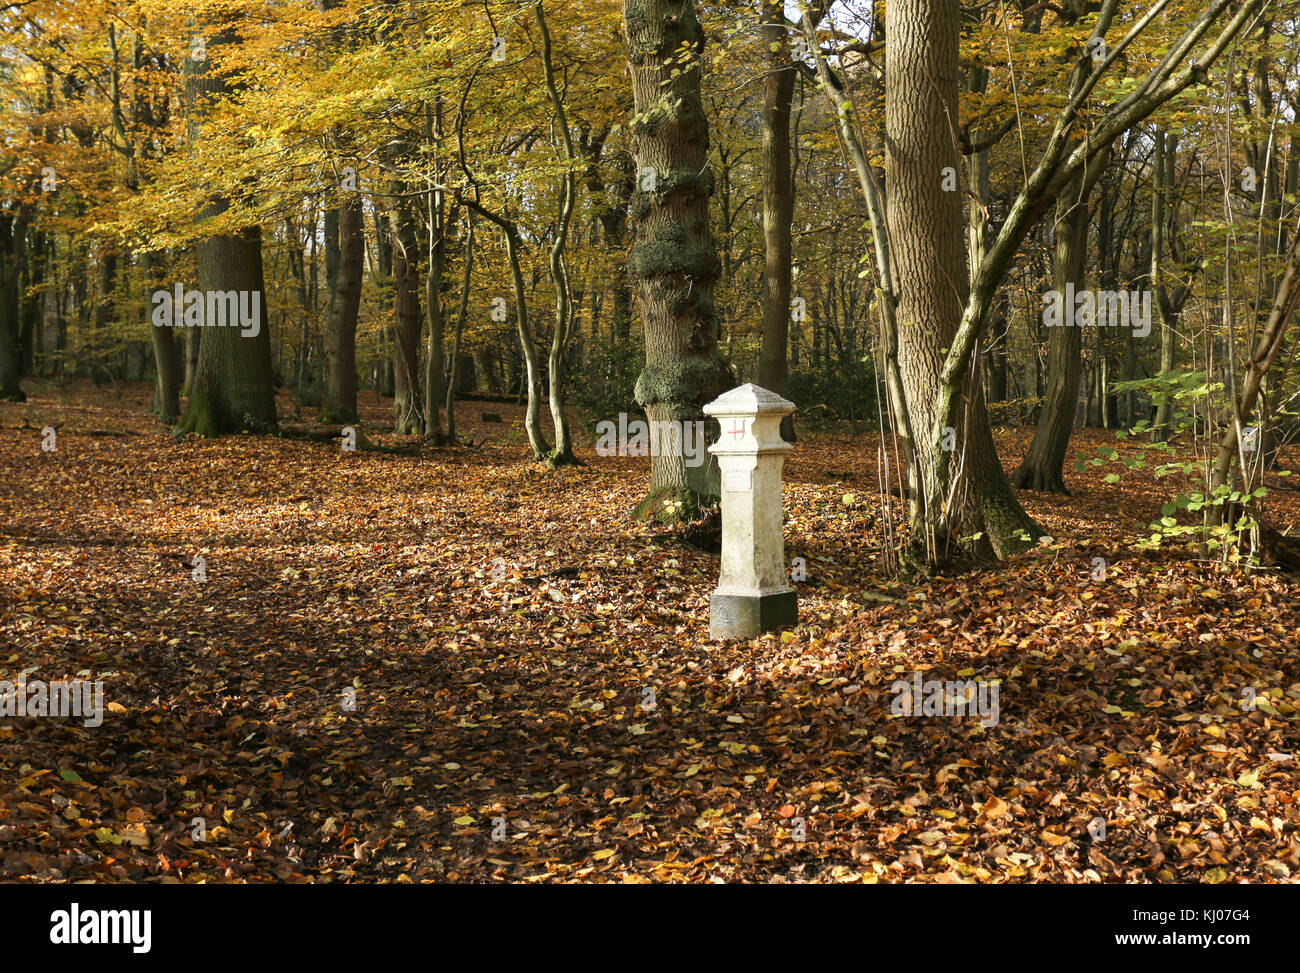 An Autumn Landscape view in Broxbourne Woods with a Coal Tax Post which is located deep in the woods. Stock Photo